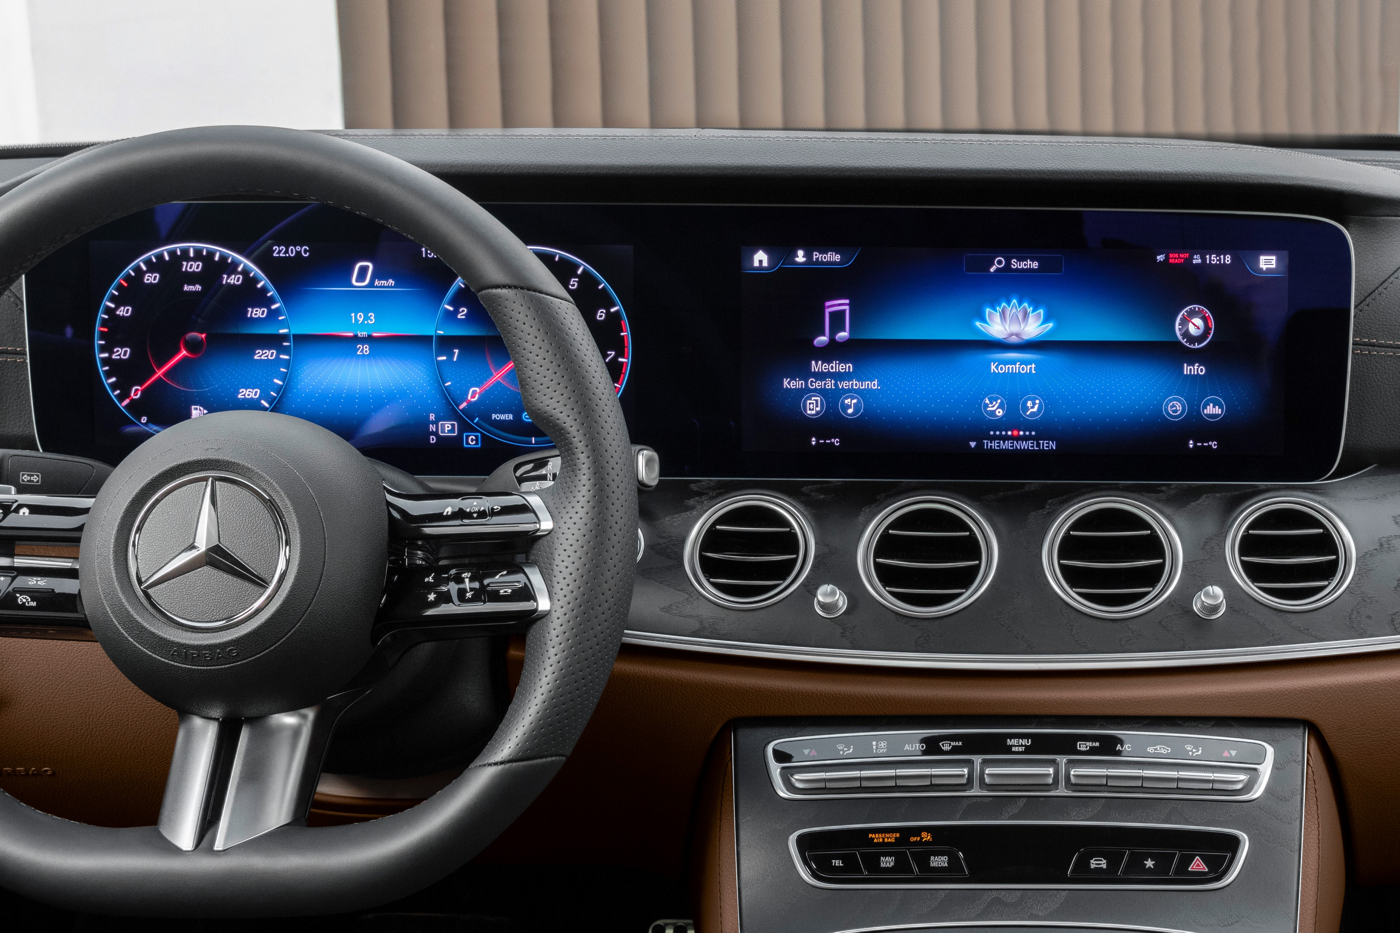 2021 Mercedes E-Class gauges display